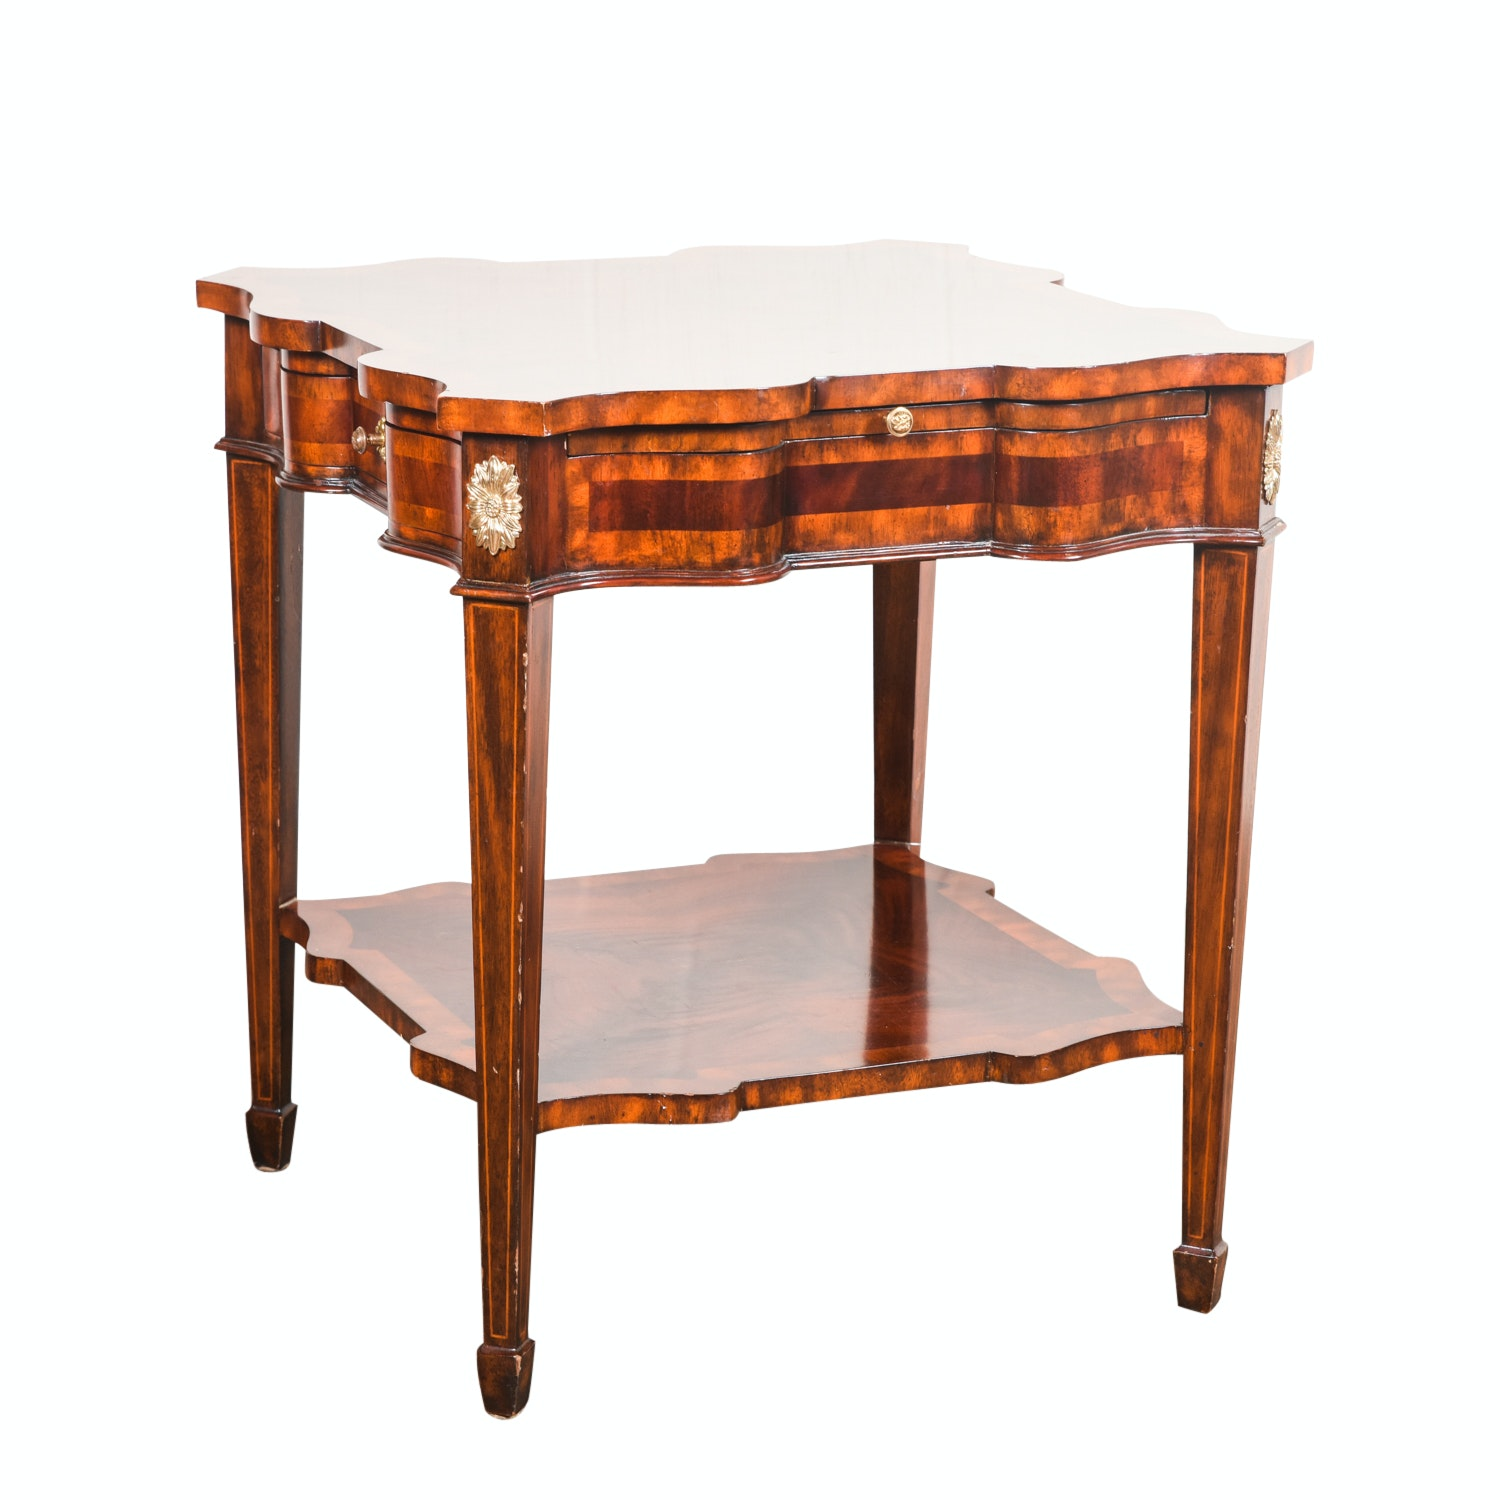 Matched and Inlaid Mahogany Side Table by Maitland-Smith